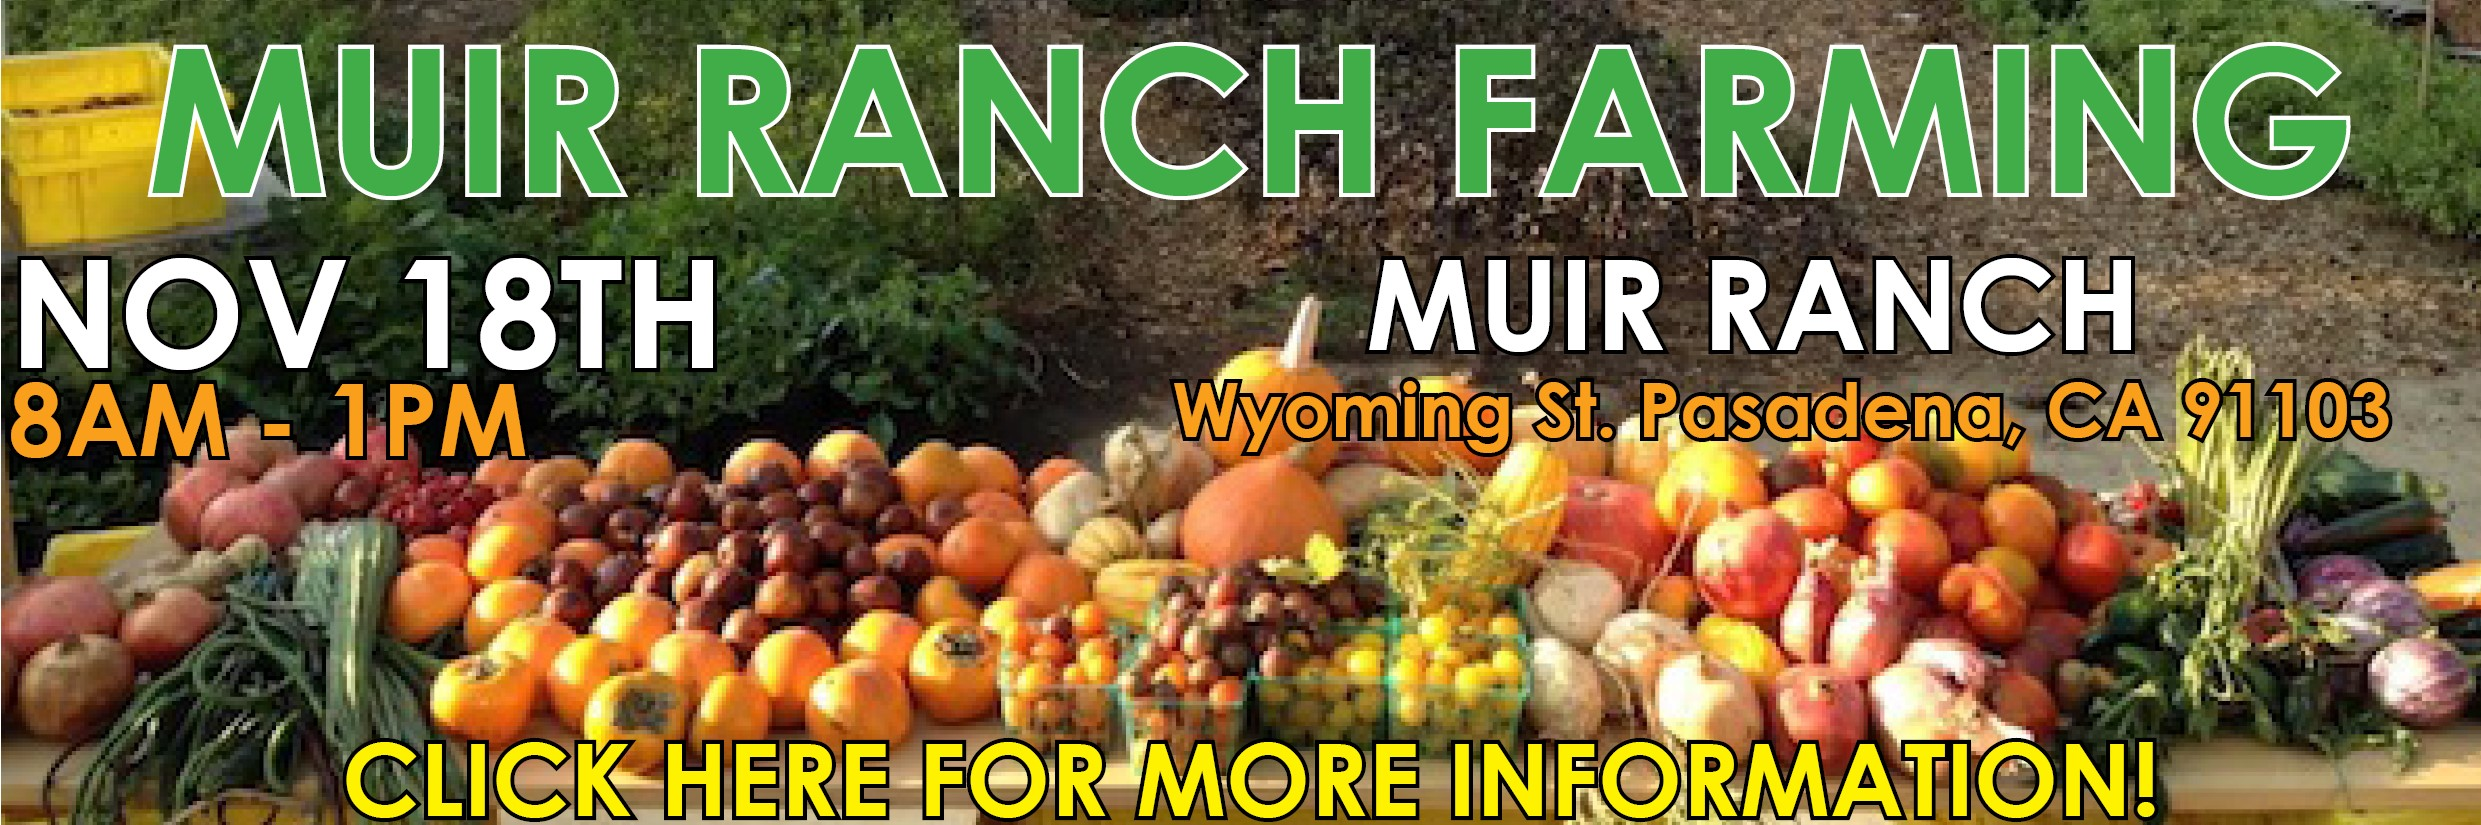 Muir Ranch Banner